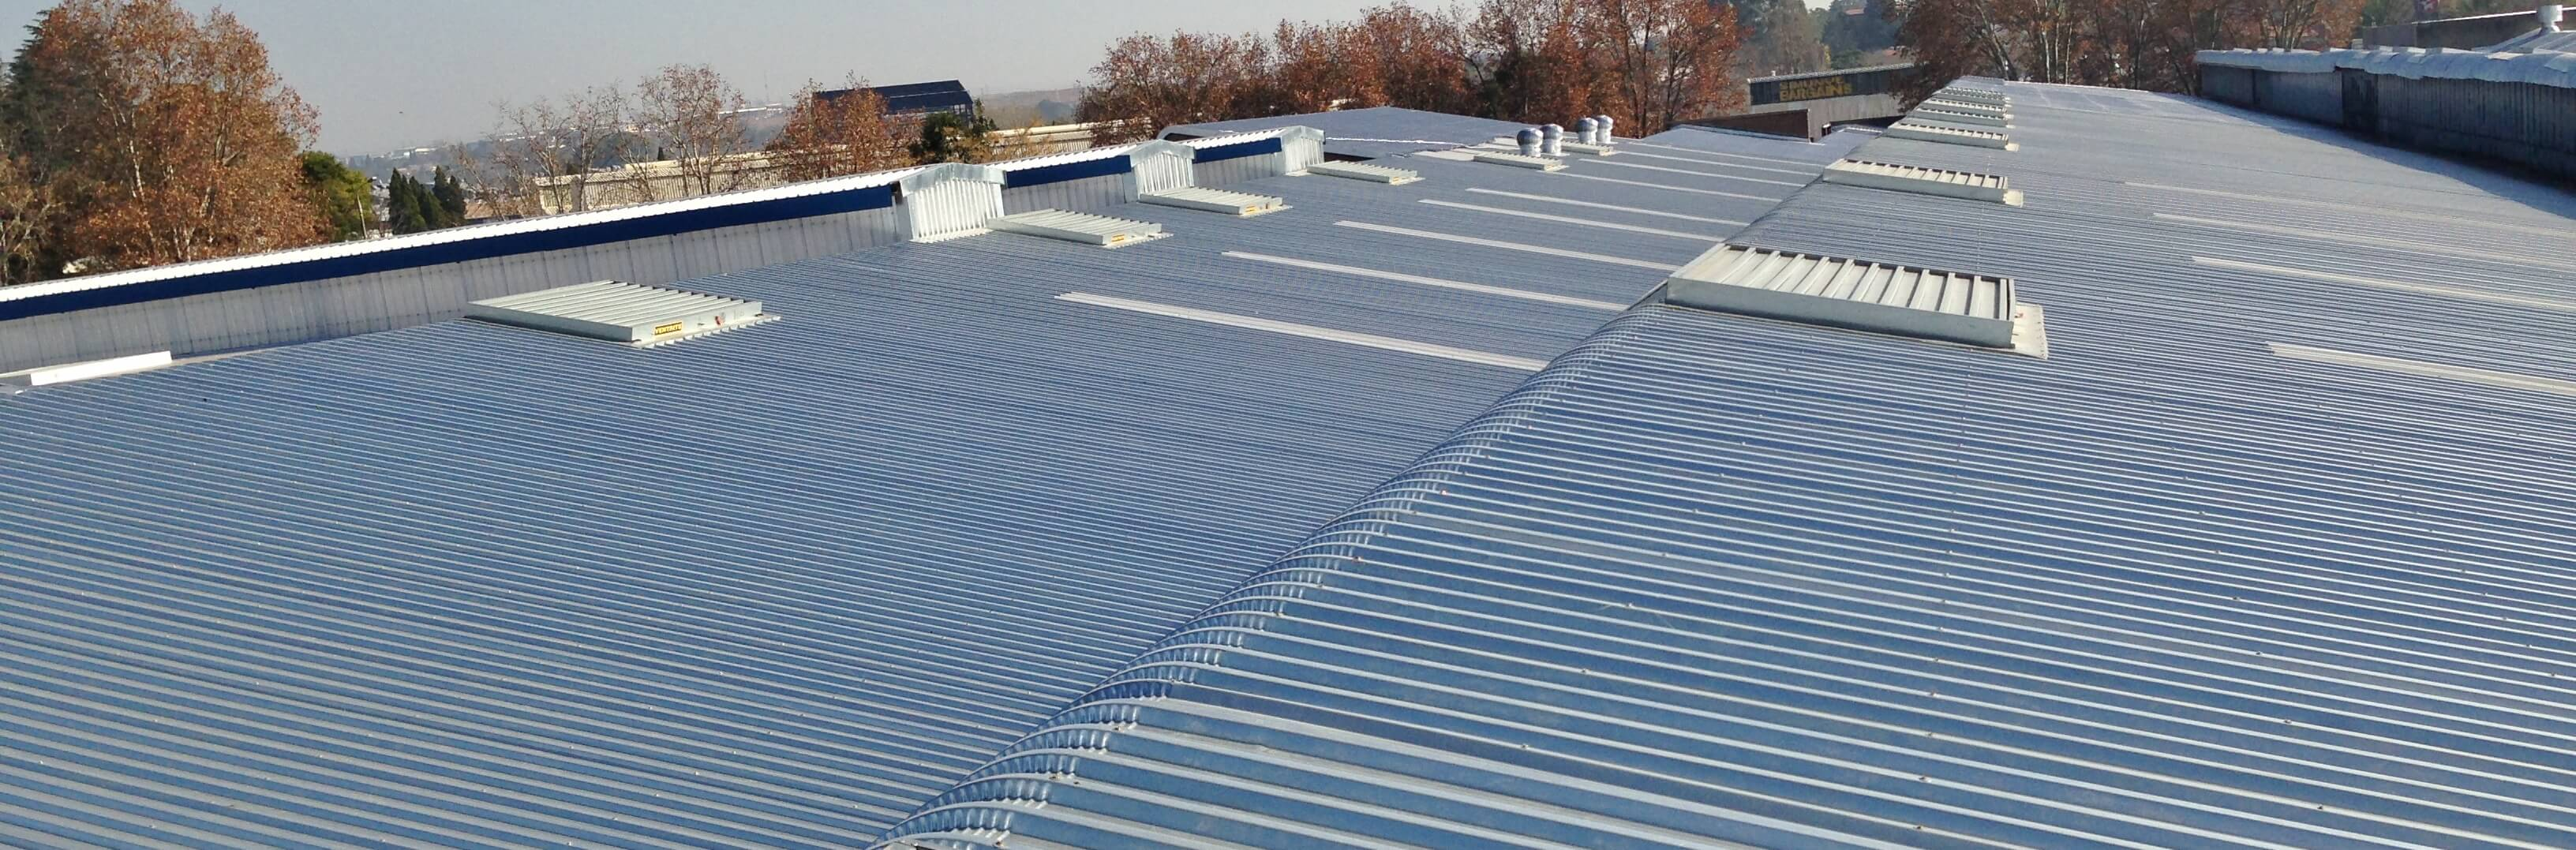 Roofing Sheeting